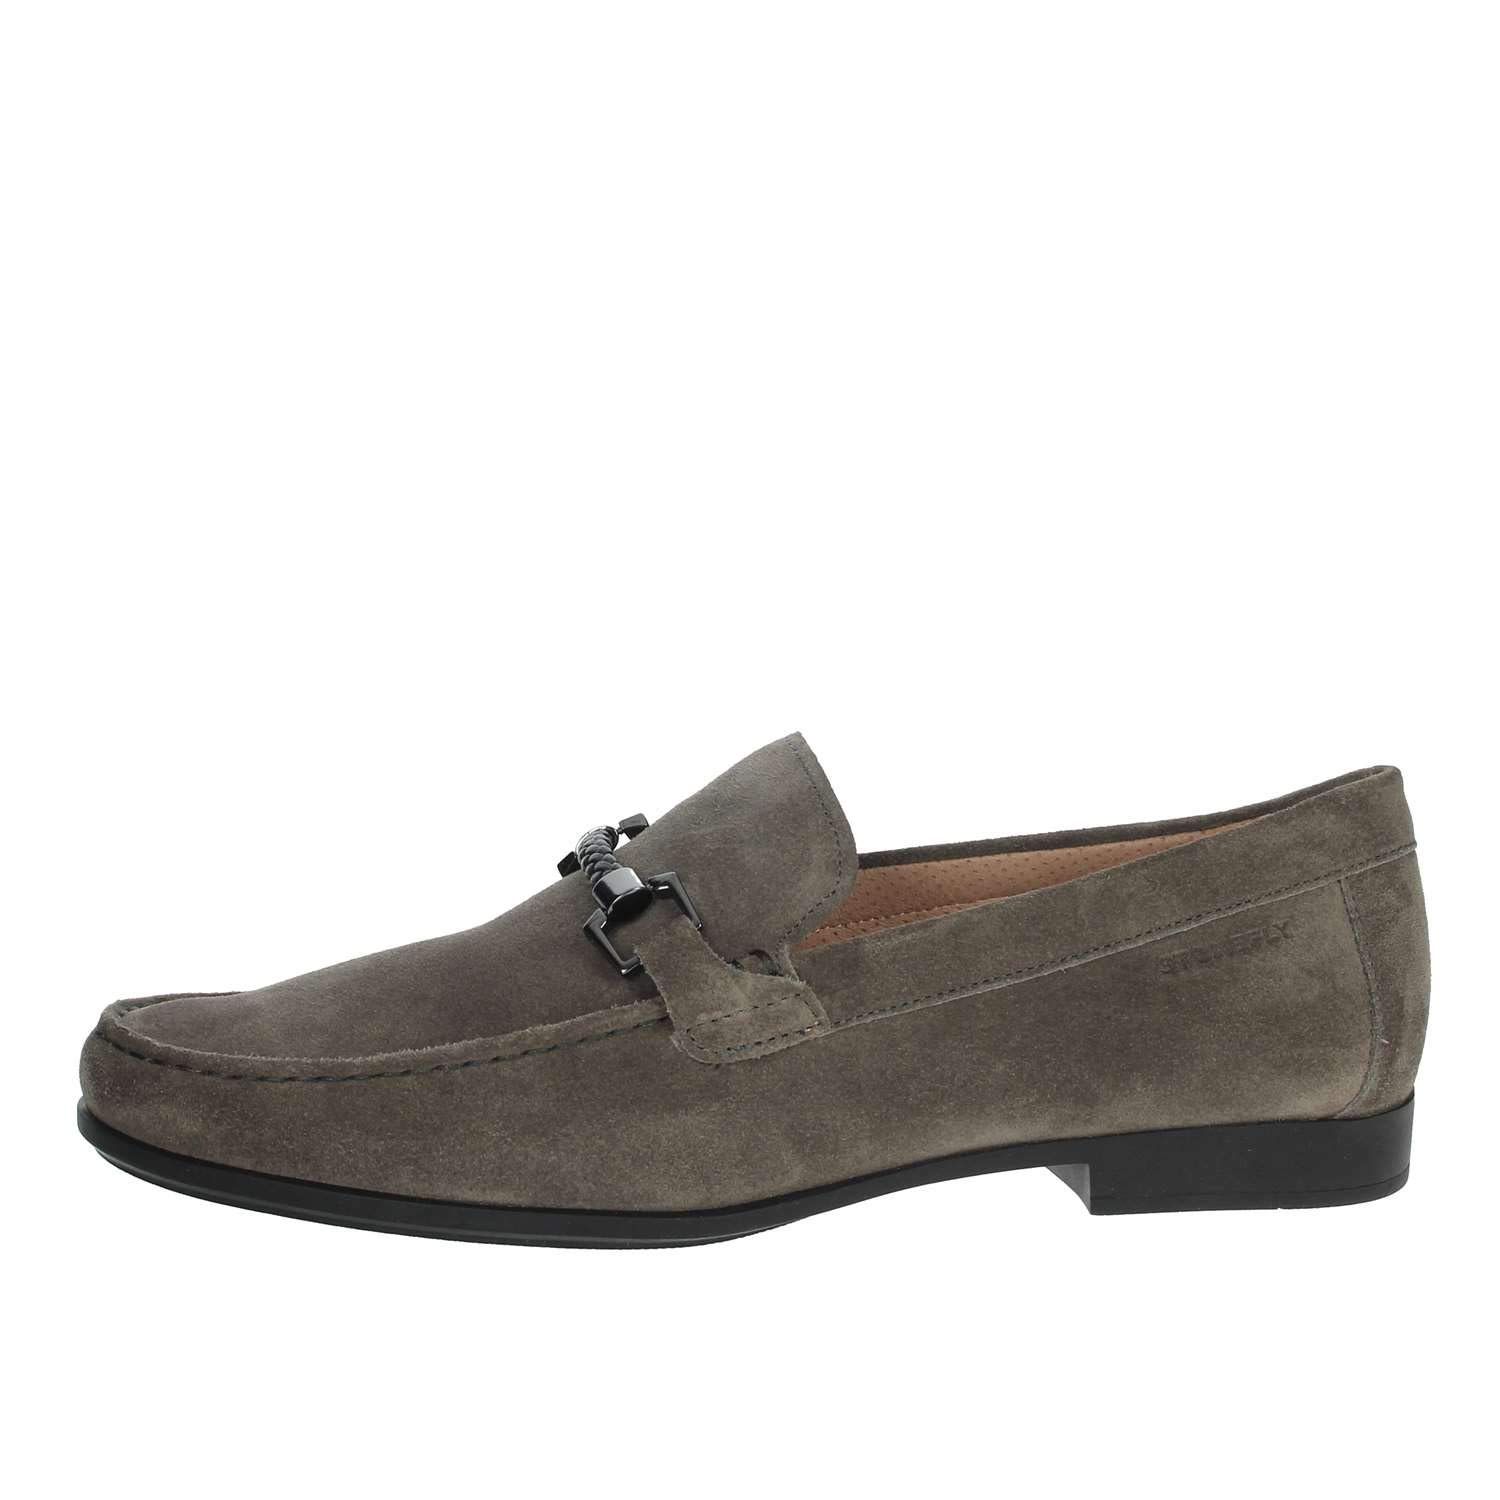 313e304162592 Stonefly Summer Ii Velour, Men's Loafers 8 Grey nucdza7610-Loafers ...